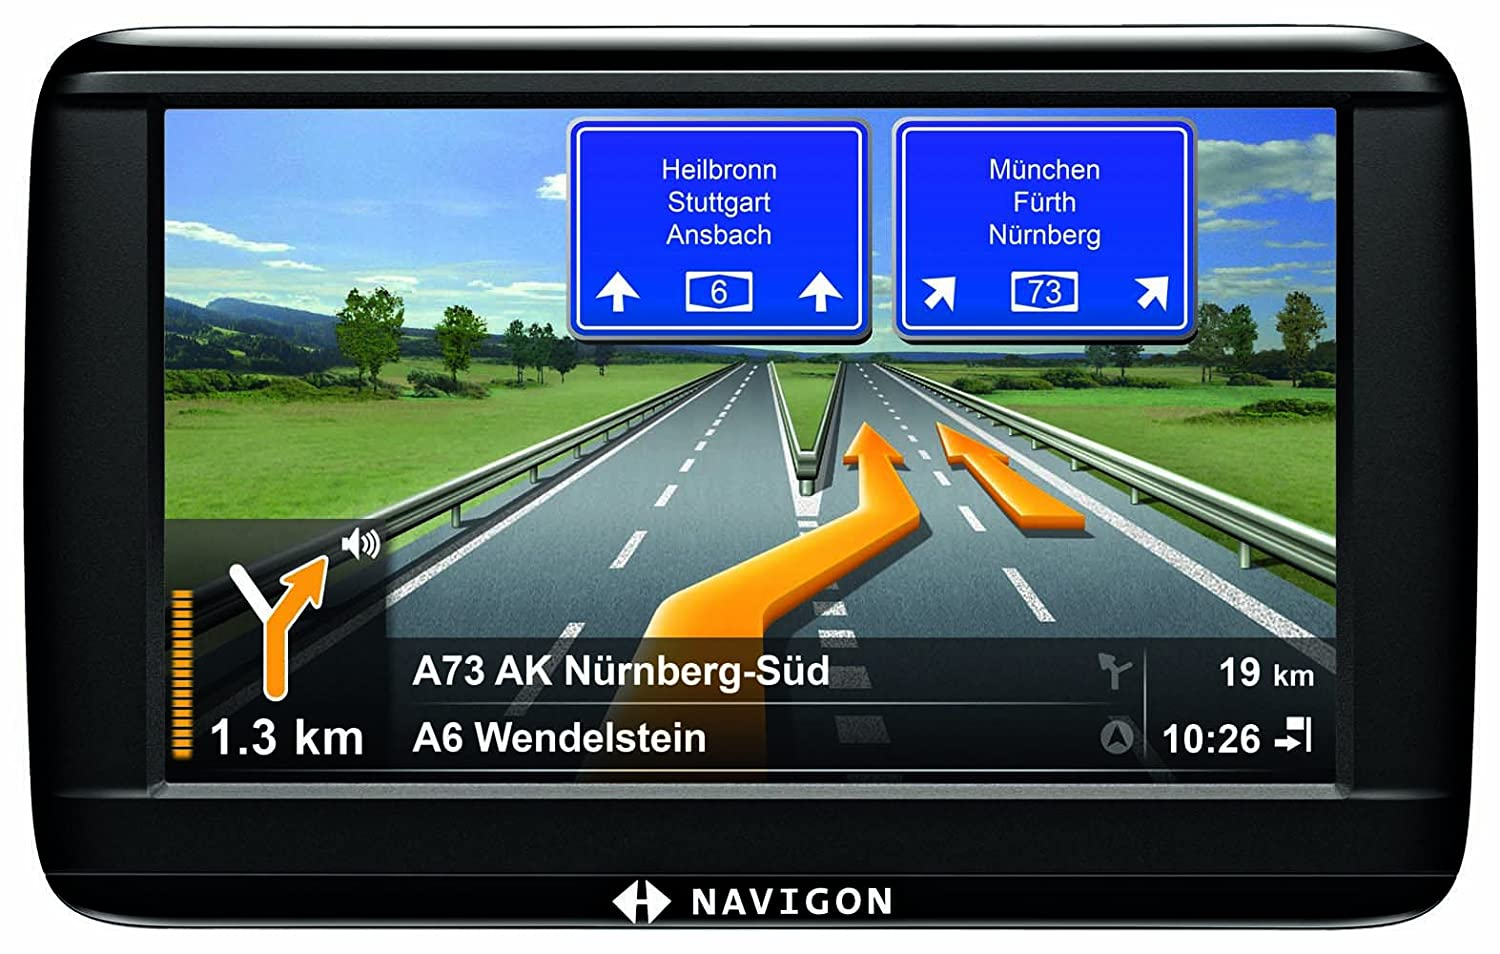 NAVIGON 42 Easy Navigationssystem (10,9cm (4,3 Zoll) Display, Europa 20, TMC, NAVIGON Flow, Aktiver Fahrspurassistent, Reality View Pro) Navigon AG B10020027